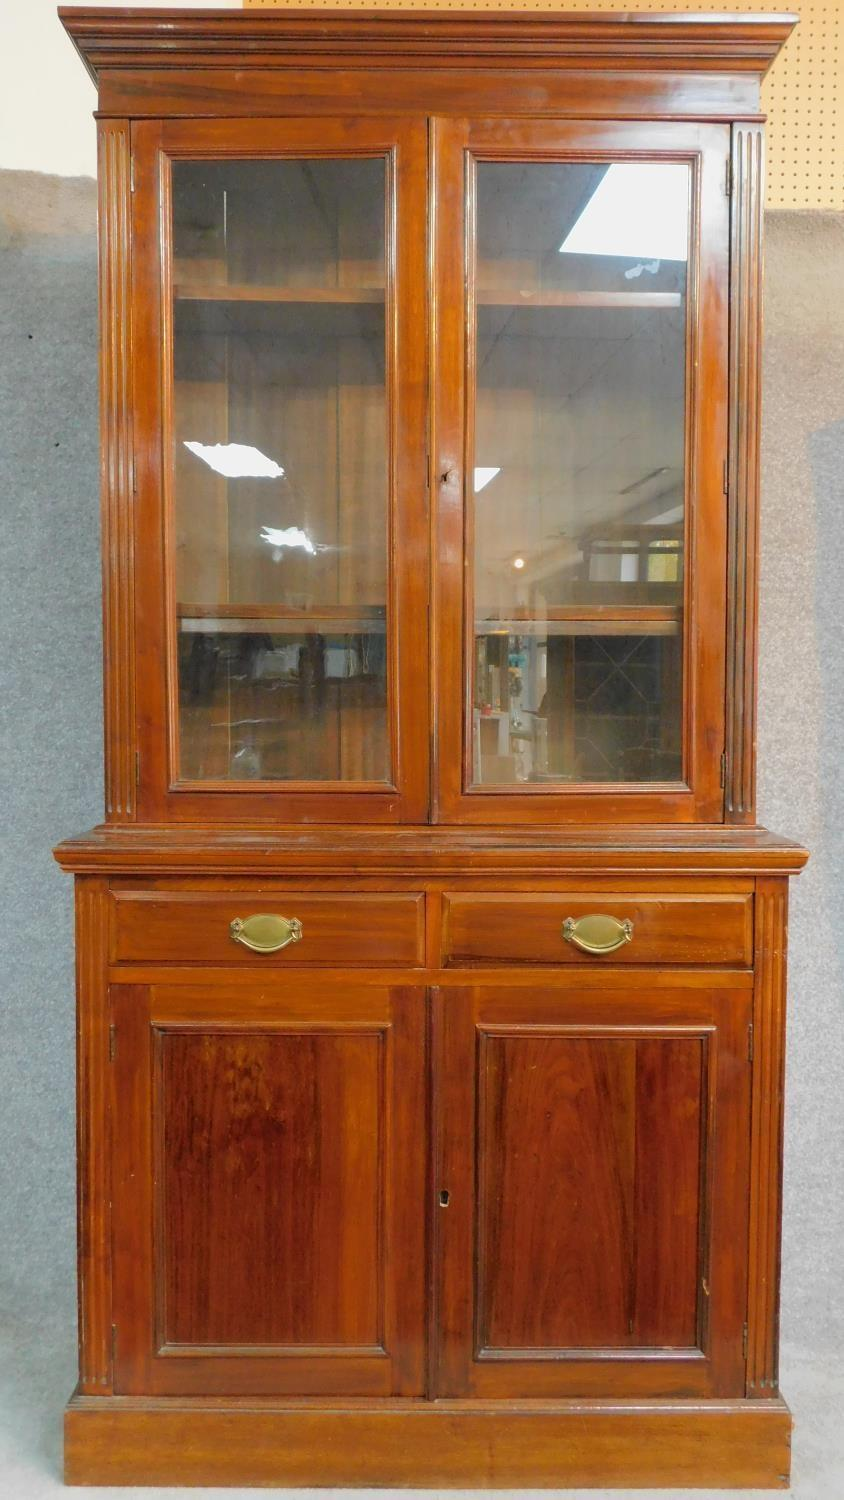 A late 19th century walnut library bookcase with glazed upper section above pair of frieze drawers